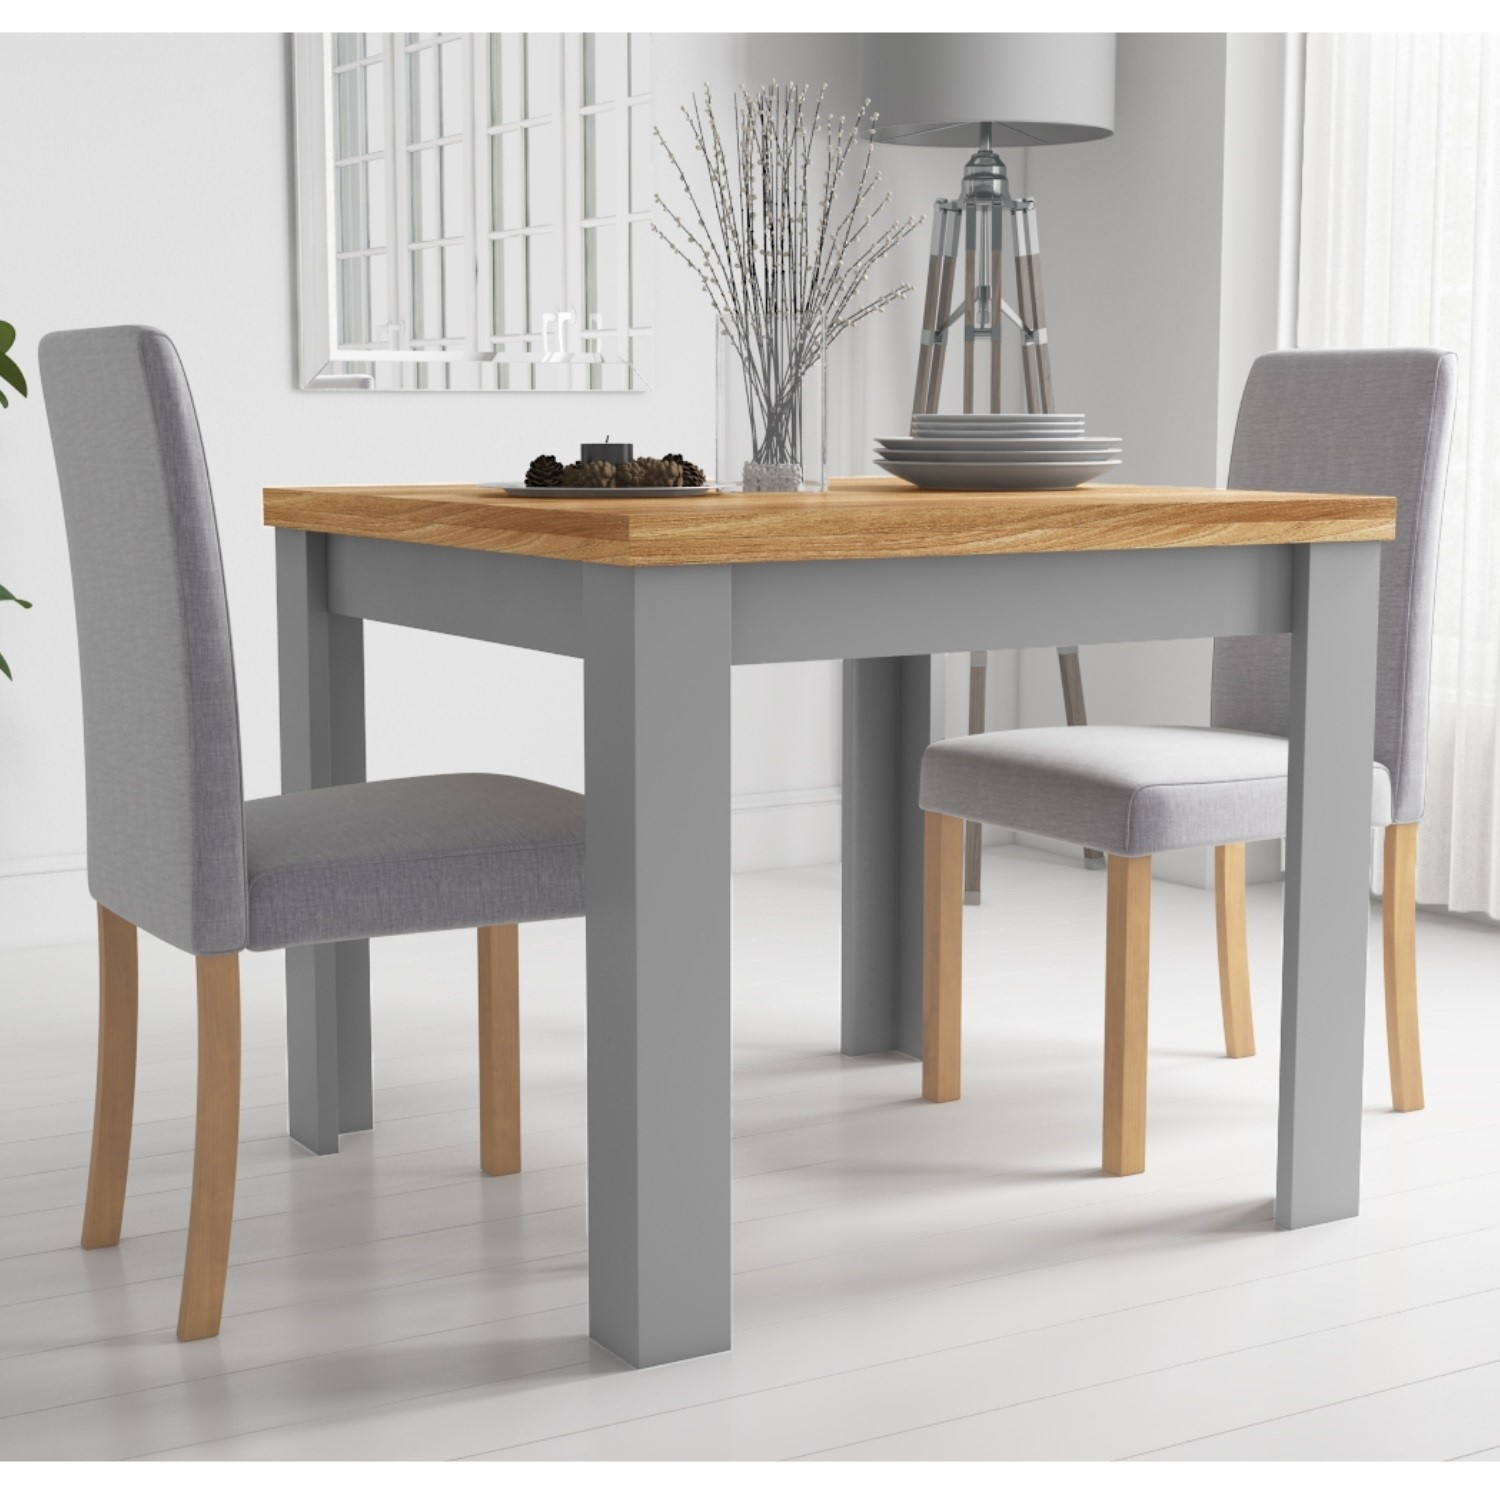 New Town Extendable Grey/Natural Dining Set with 3 Chairs in Grey Fabric